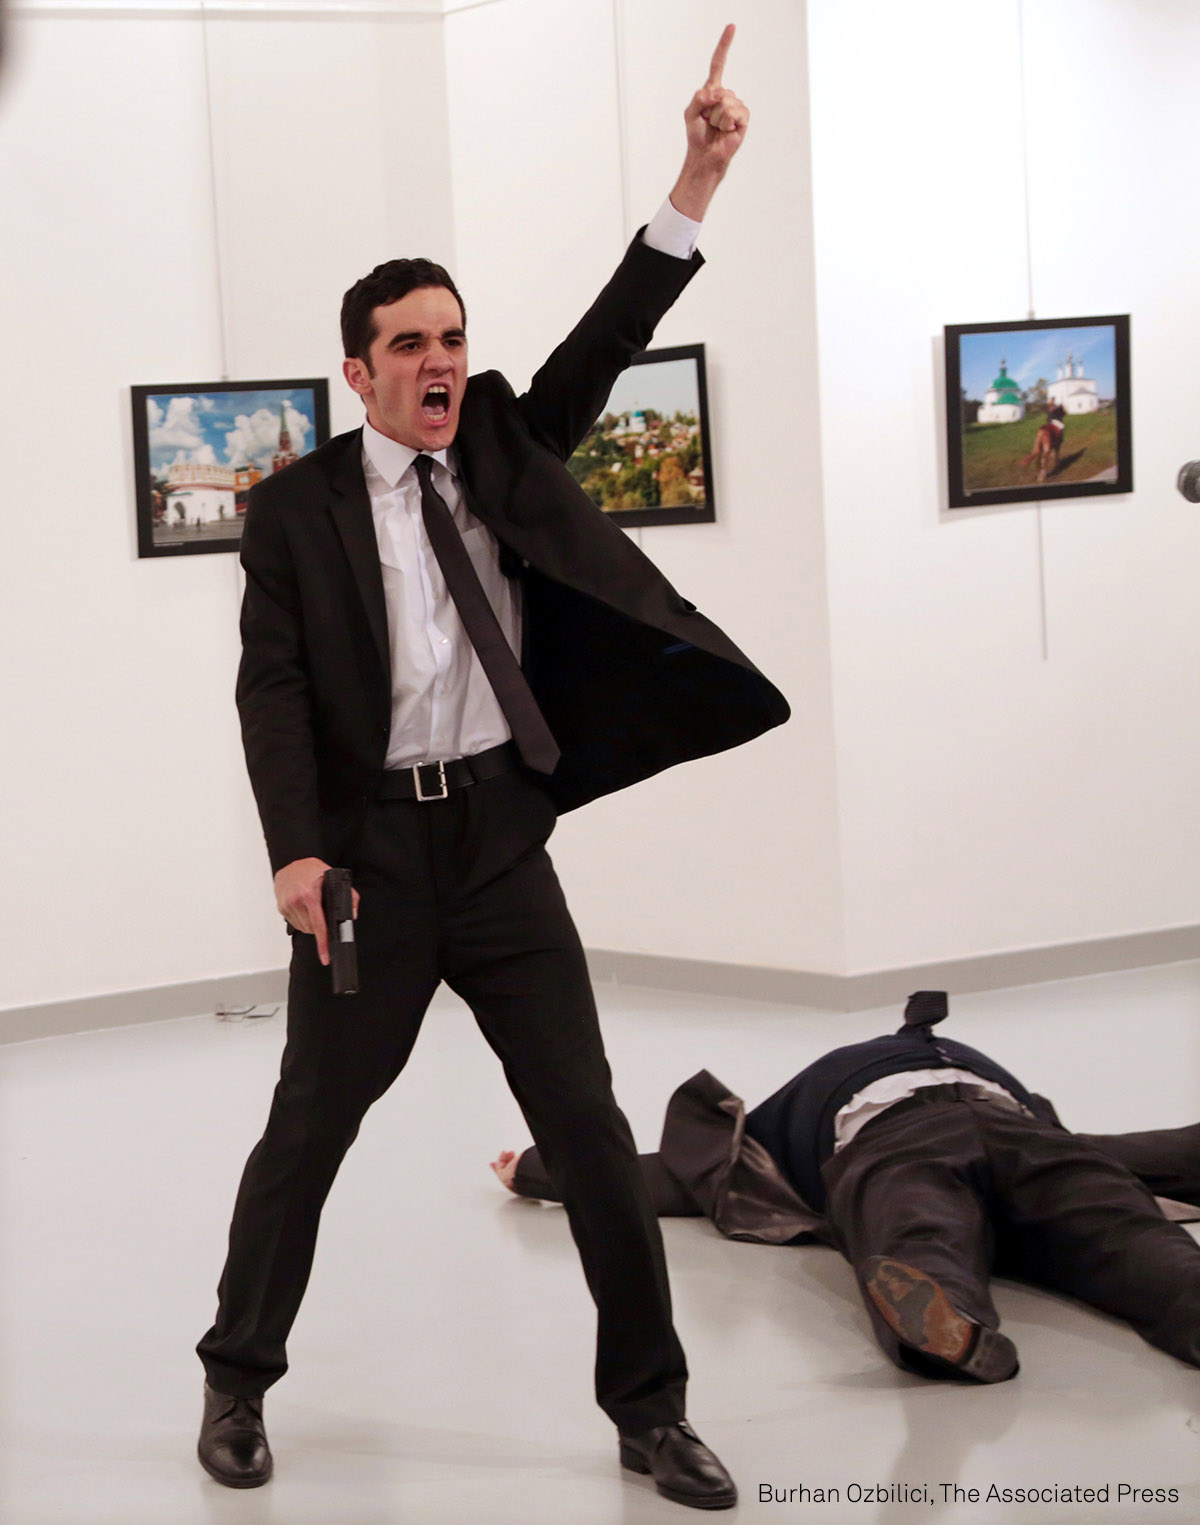 World Press Photo of the Year | An Assassination in Turkey: Mevlut Mert Altintas shouts after shooting Andrei Karlov, the Russian ambassador to Turkey, at an art gallery in Ankara, Turkey, in December 2016. (AP Photo/Burhan Ozbilici).